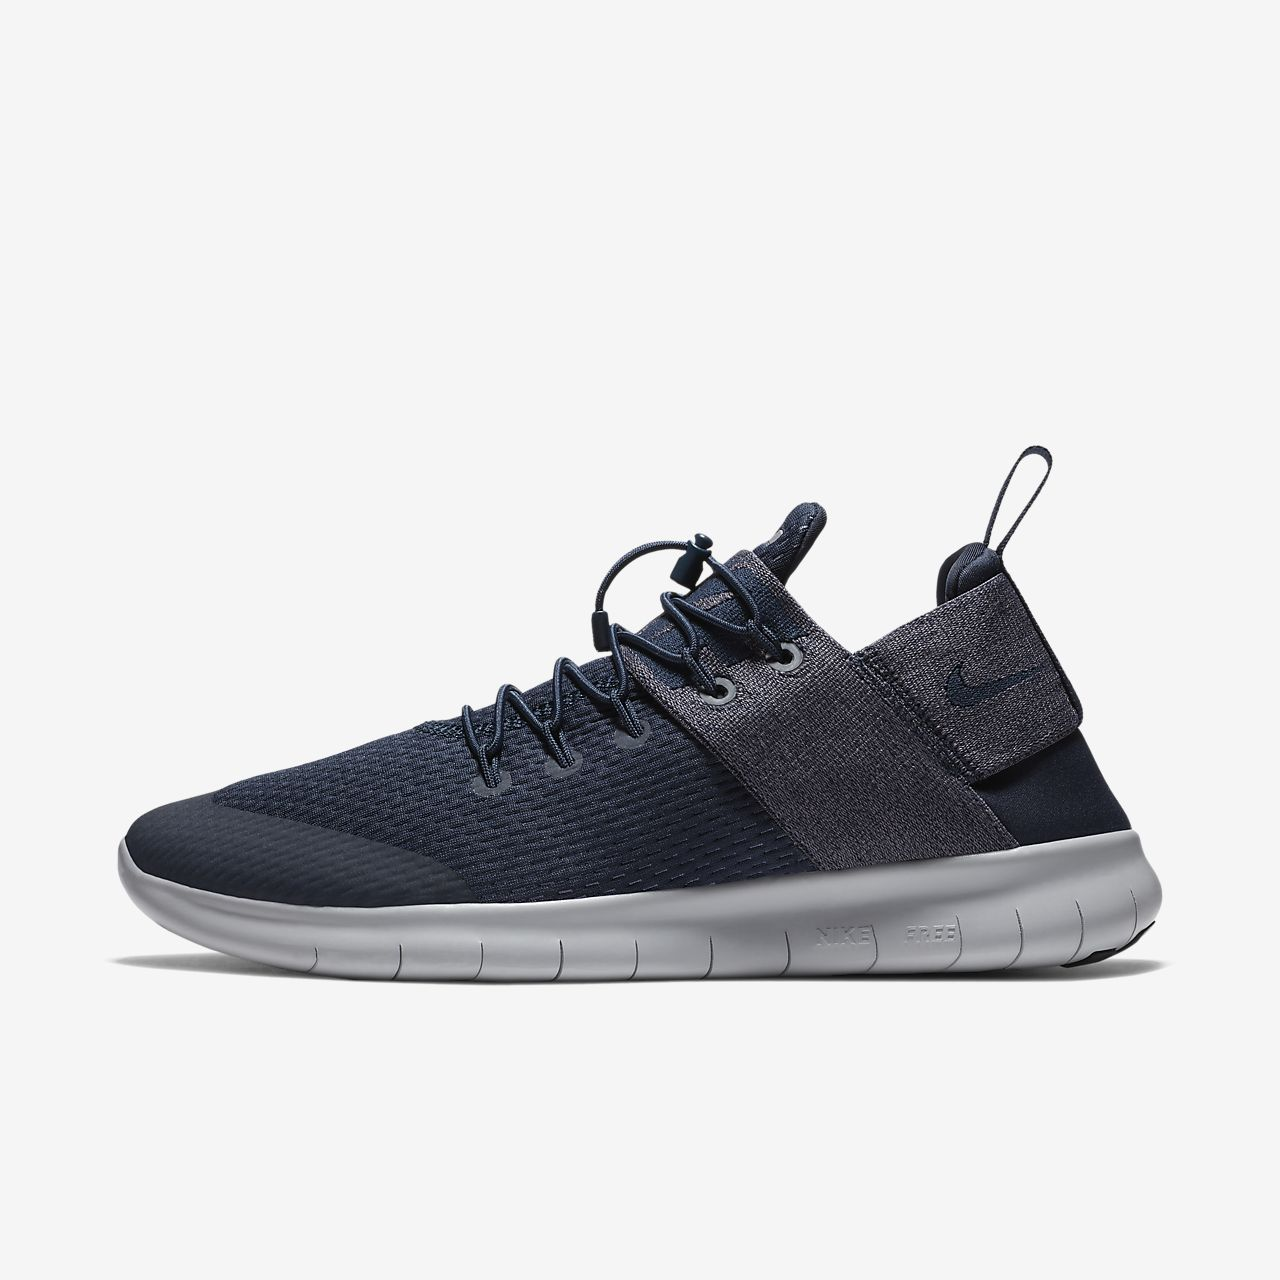 ... Chaussure de running Nike Free RN Commuter 2017 pour Homme